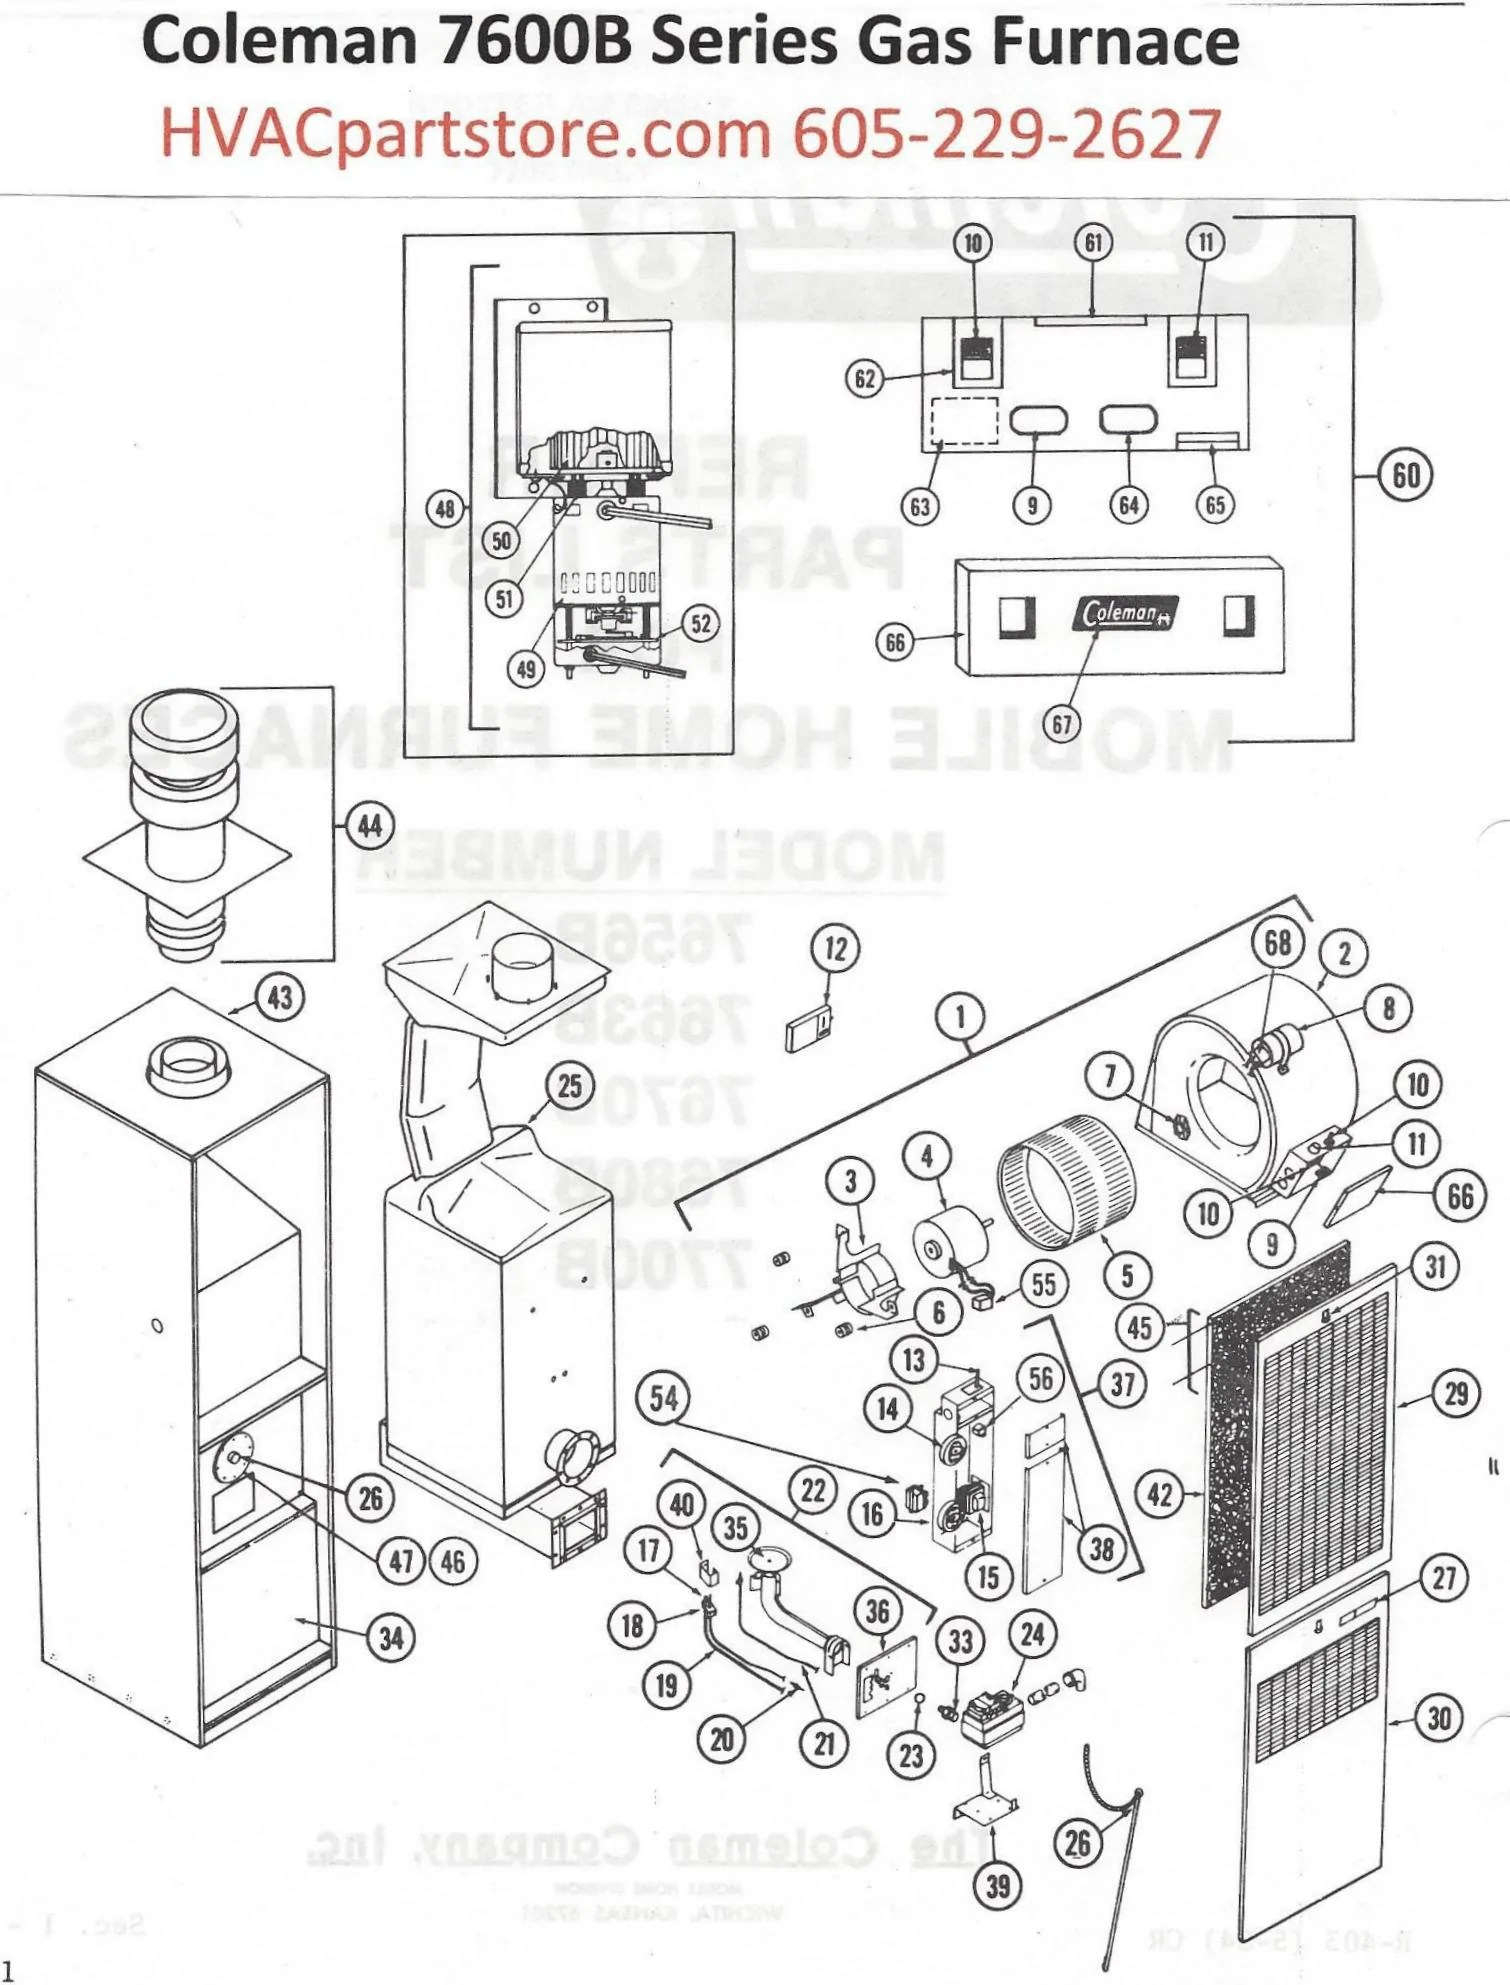 small resolution of 7670b856 coleman gas furnace parts hvacpartstore coleman gas furnace diagram